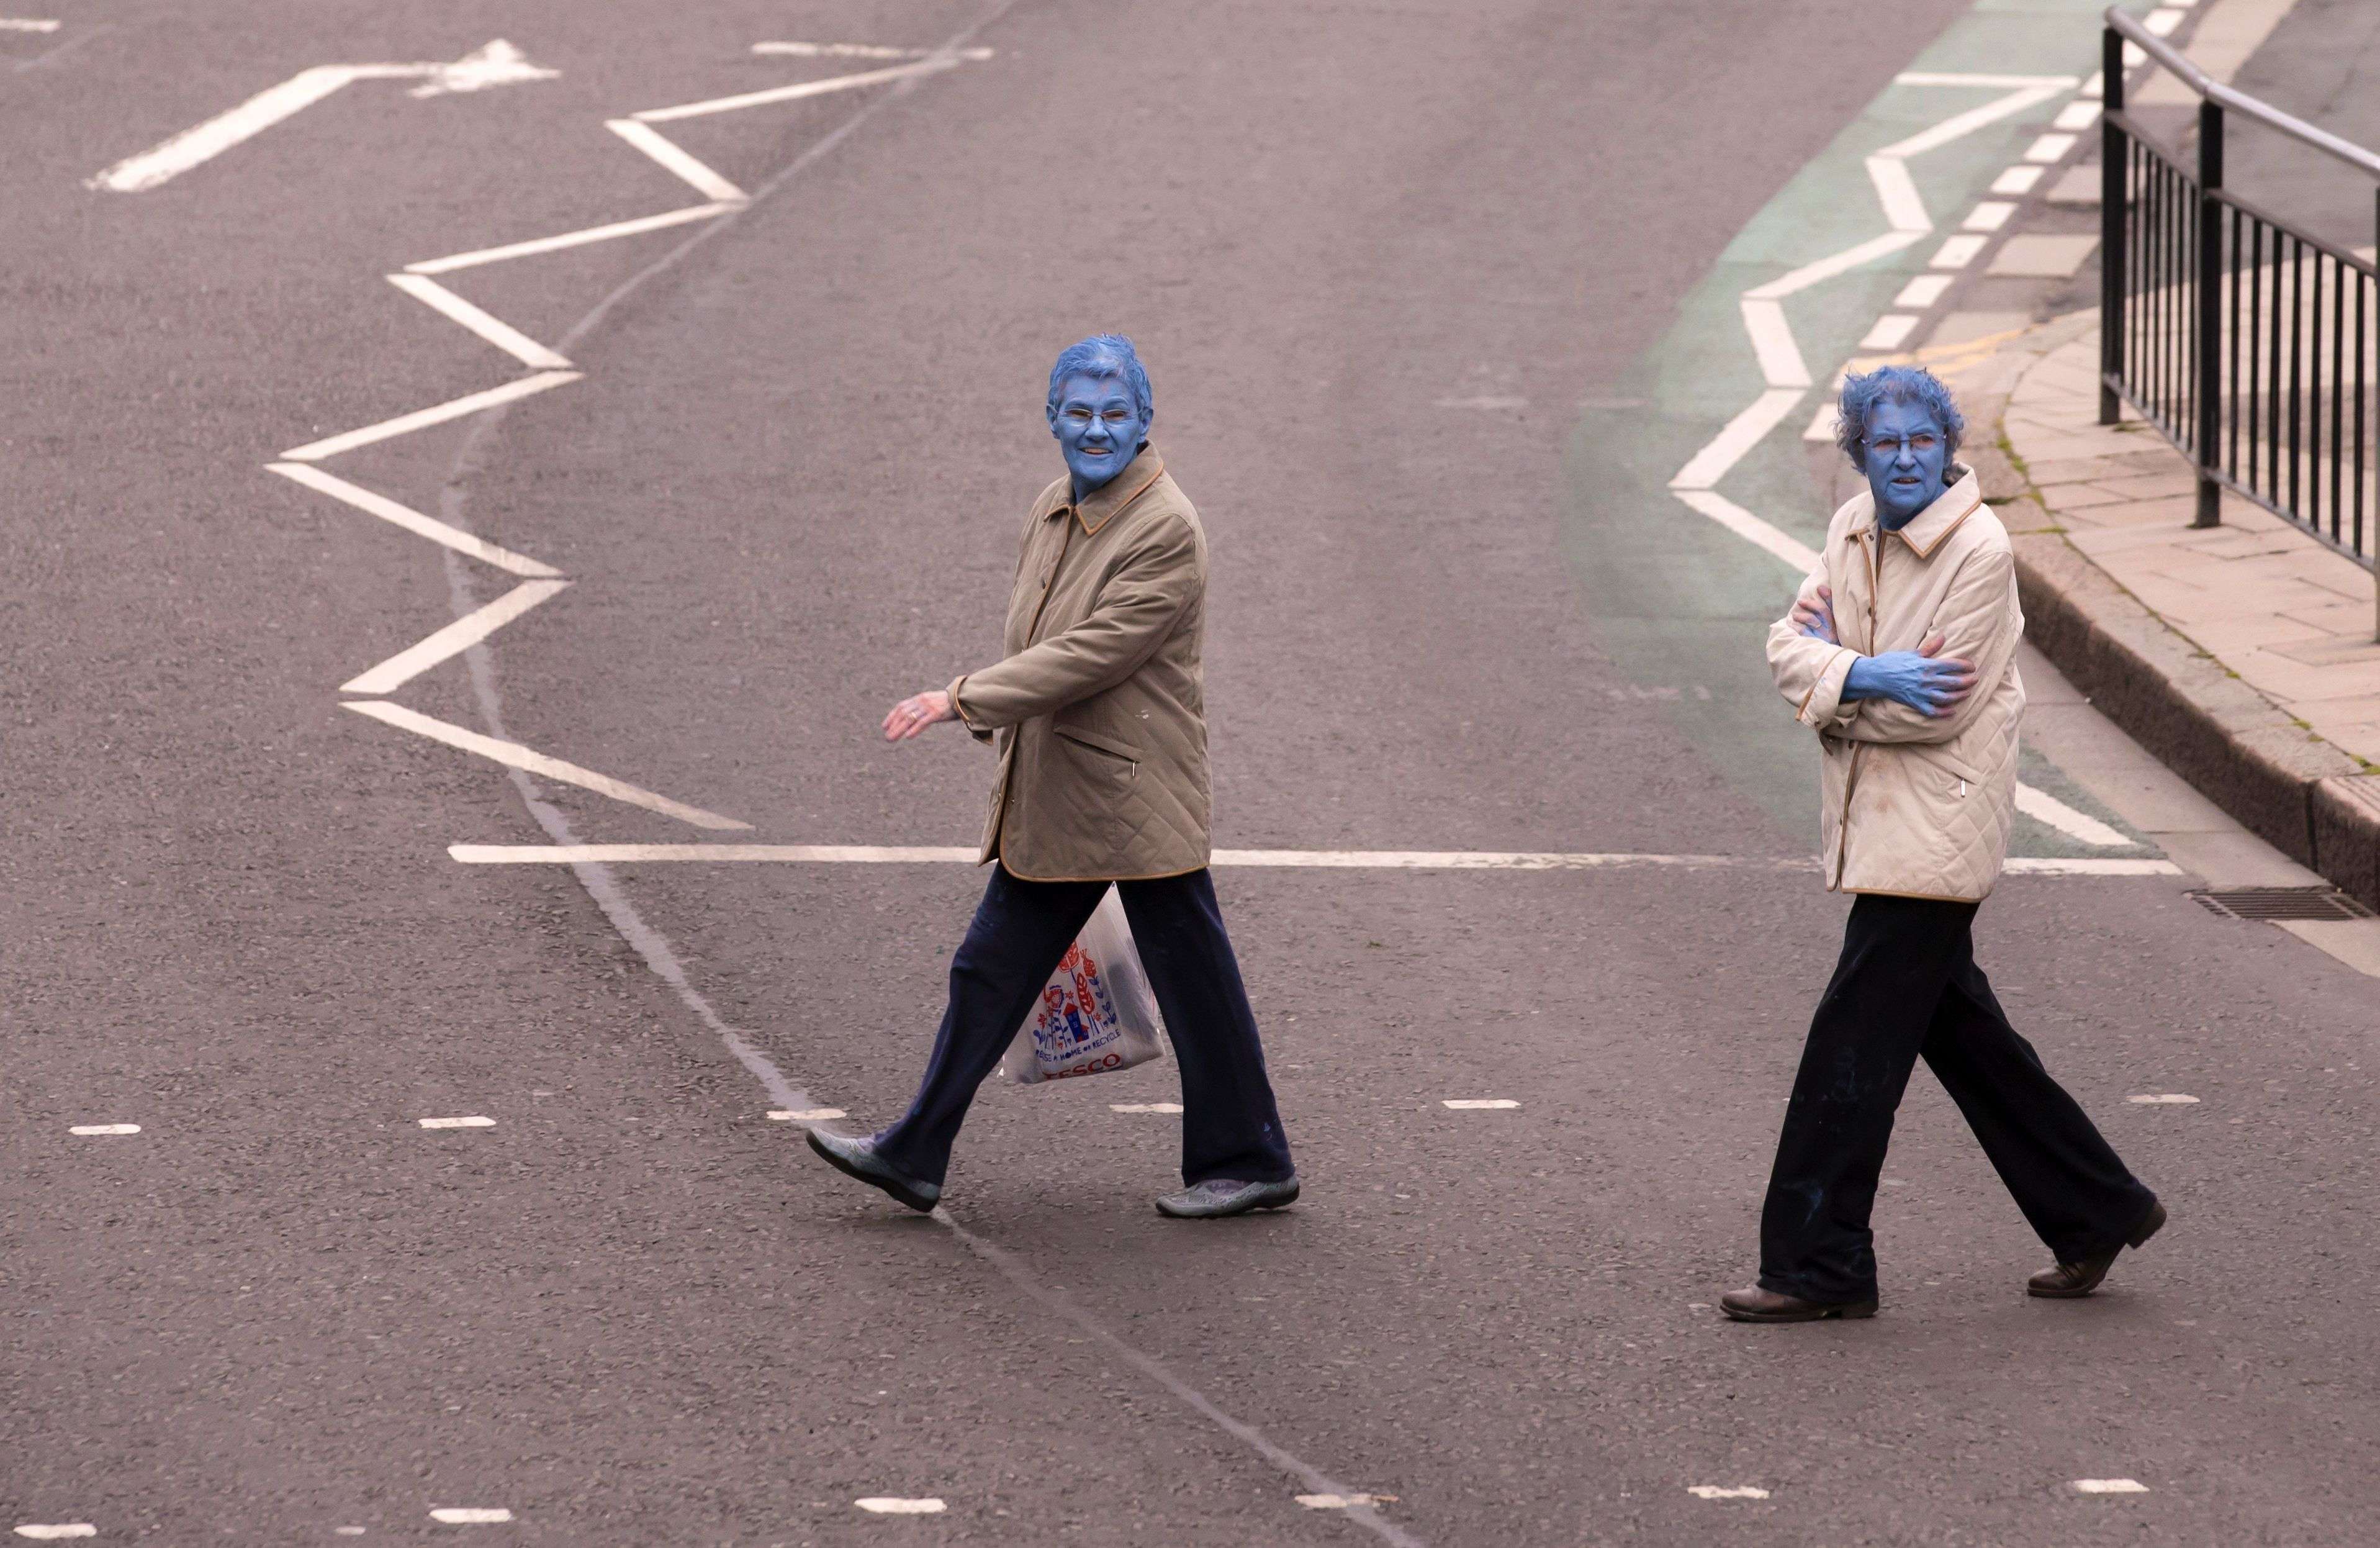 """After taking part in Spencer Tunick's """"Sea of Hull"""" installation, two women cross the road in Kingston upon Hull on July 9, 2016. Over a period of 20 years, the New York based artist has created over 90 art installations in some of the most culturally significant places and landmarks around the world including the Sydney Opera House, Place des Arts in Montreal, Mexico City, Ernest Happel Stadium in Vienna and Munich in Germany. / AFP PHOTO / JON SUPER / RESTRICTED TO EDITORIAL USE - MANDATORY MENTION OF THE ARTIST UPON PUBLICATION - TO ILLUSTRATE THE EVENT AS SPECIFIED IN THE CAPTION - NO CLOSE UP SHOTS TO BE REPRODUCED OF INDIVIDUALS INVOLVED IN THE INSTALLATION"""